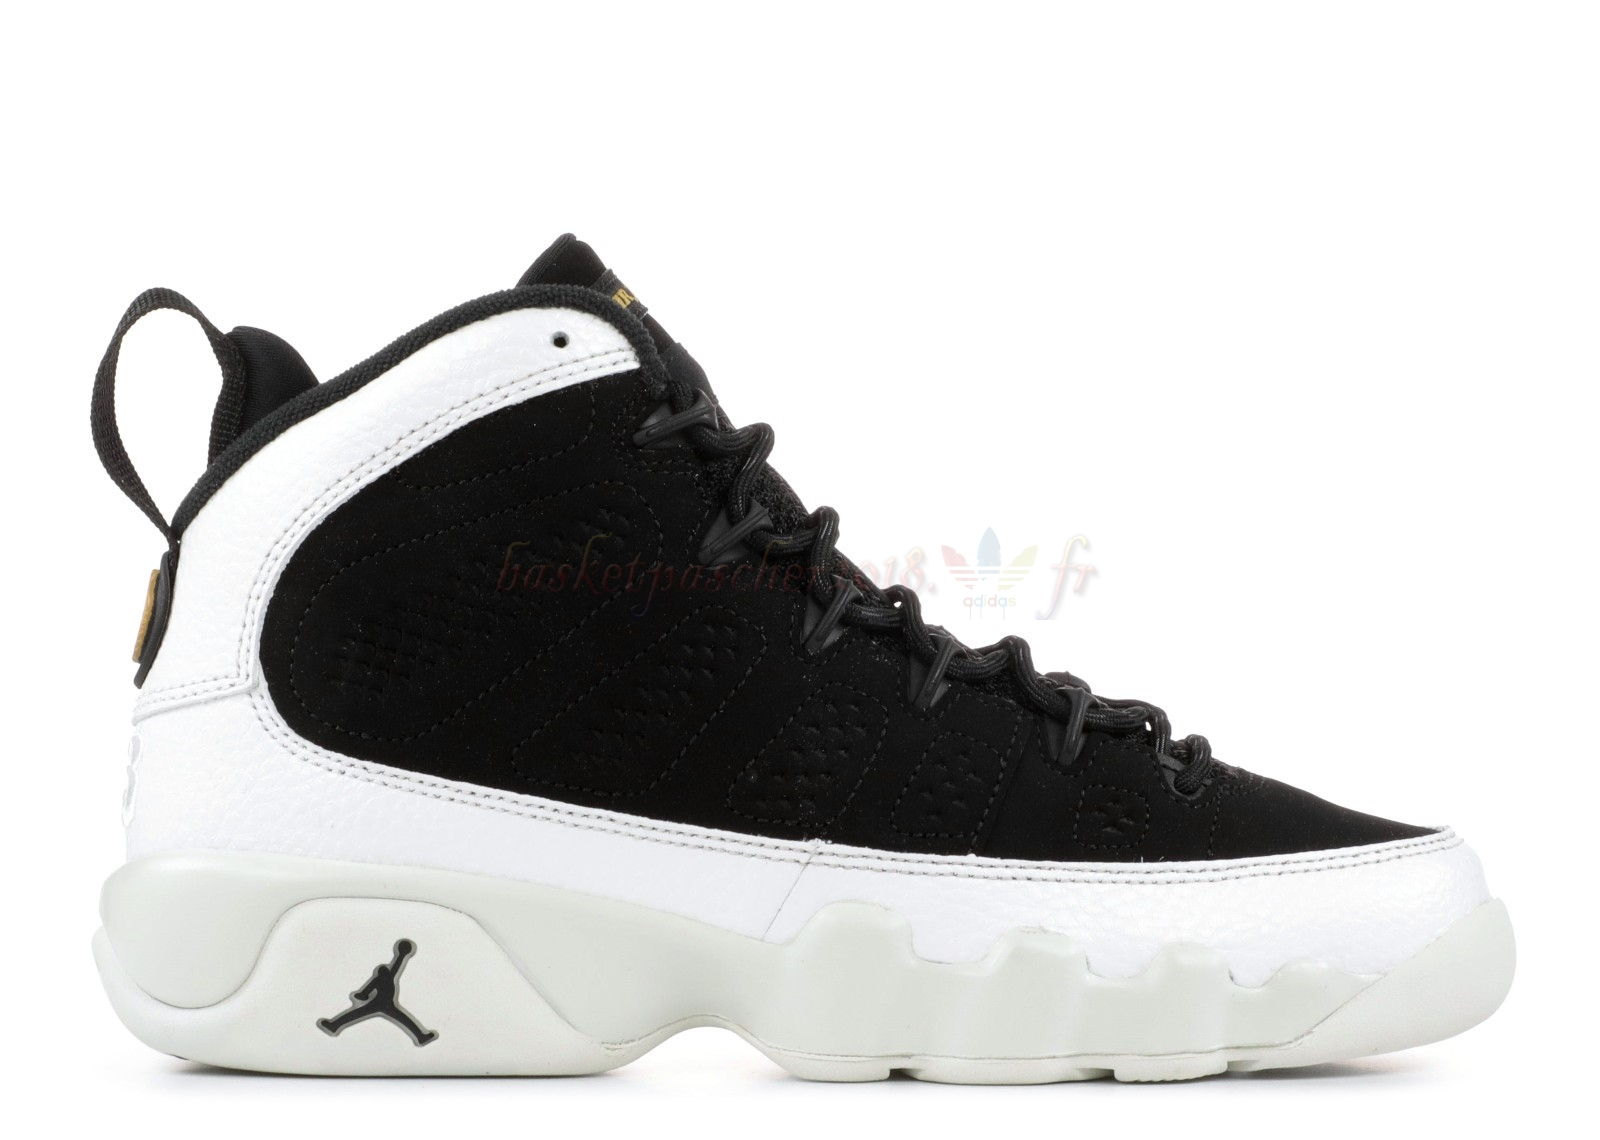 "Vente Chaude Chaussures De Basketball Enfant Air Jordan 9 Retro Bg (Gs) ""City Of Flight"" Noir Blanc (302359-021) Pas Cher"